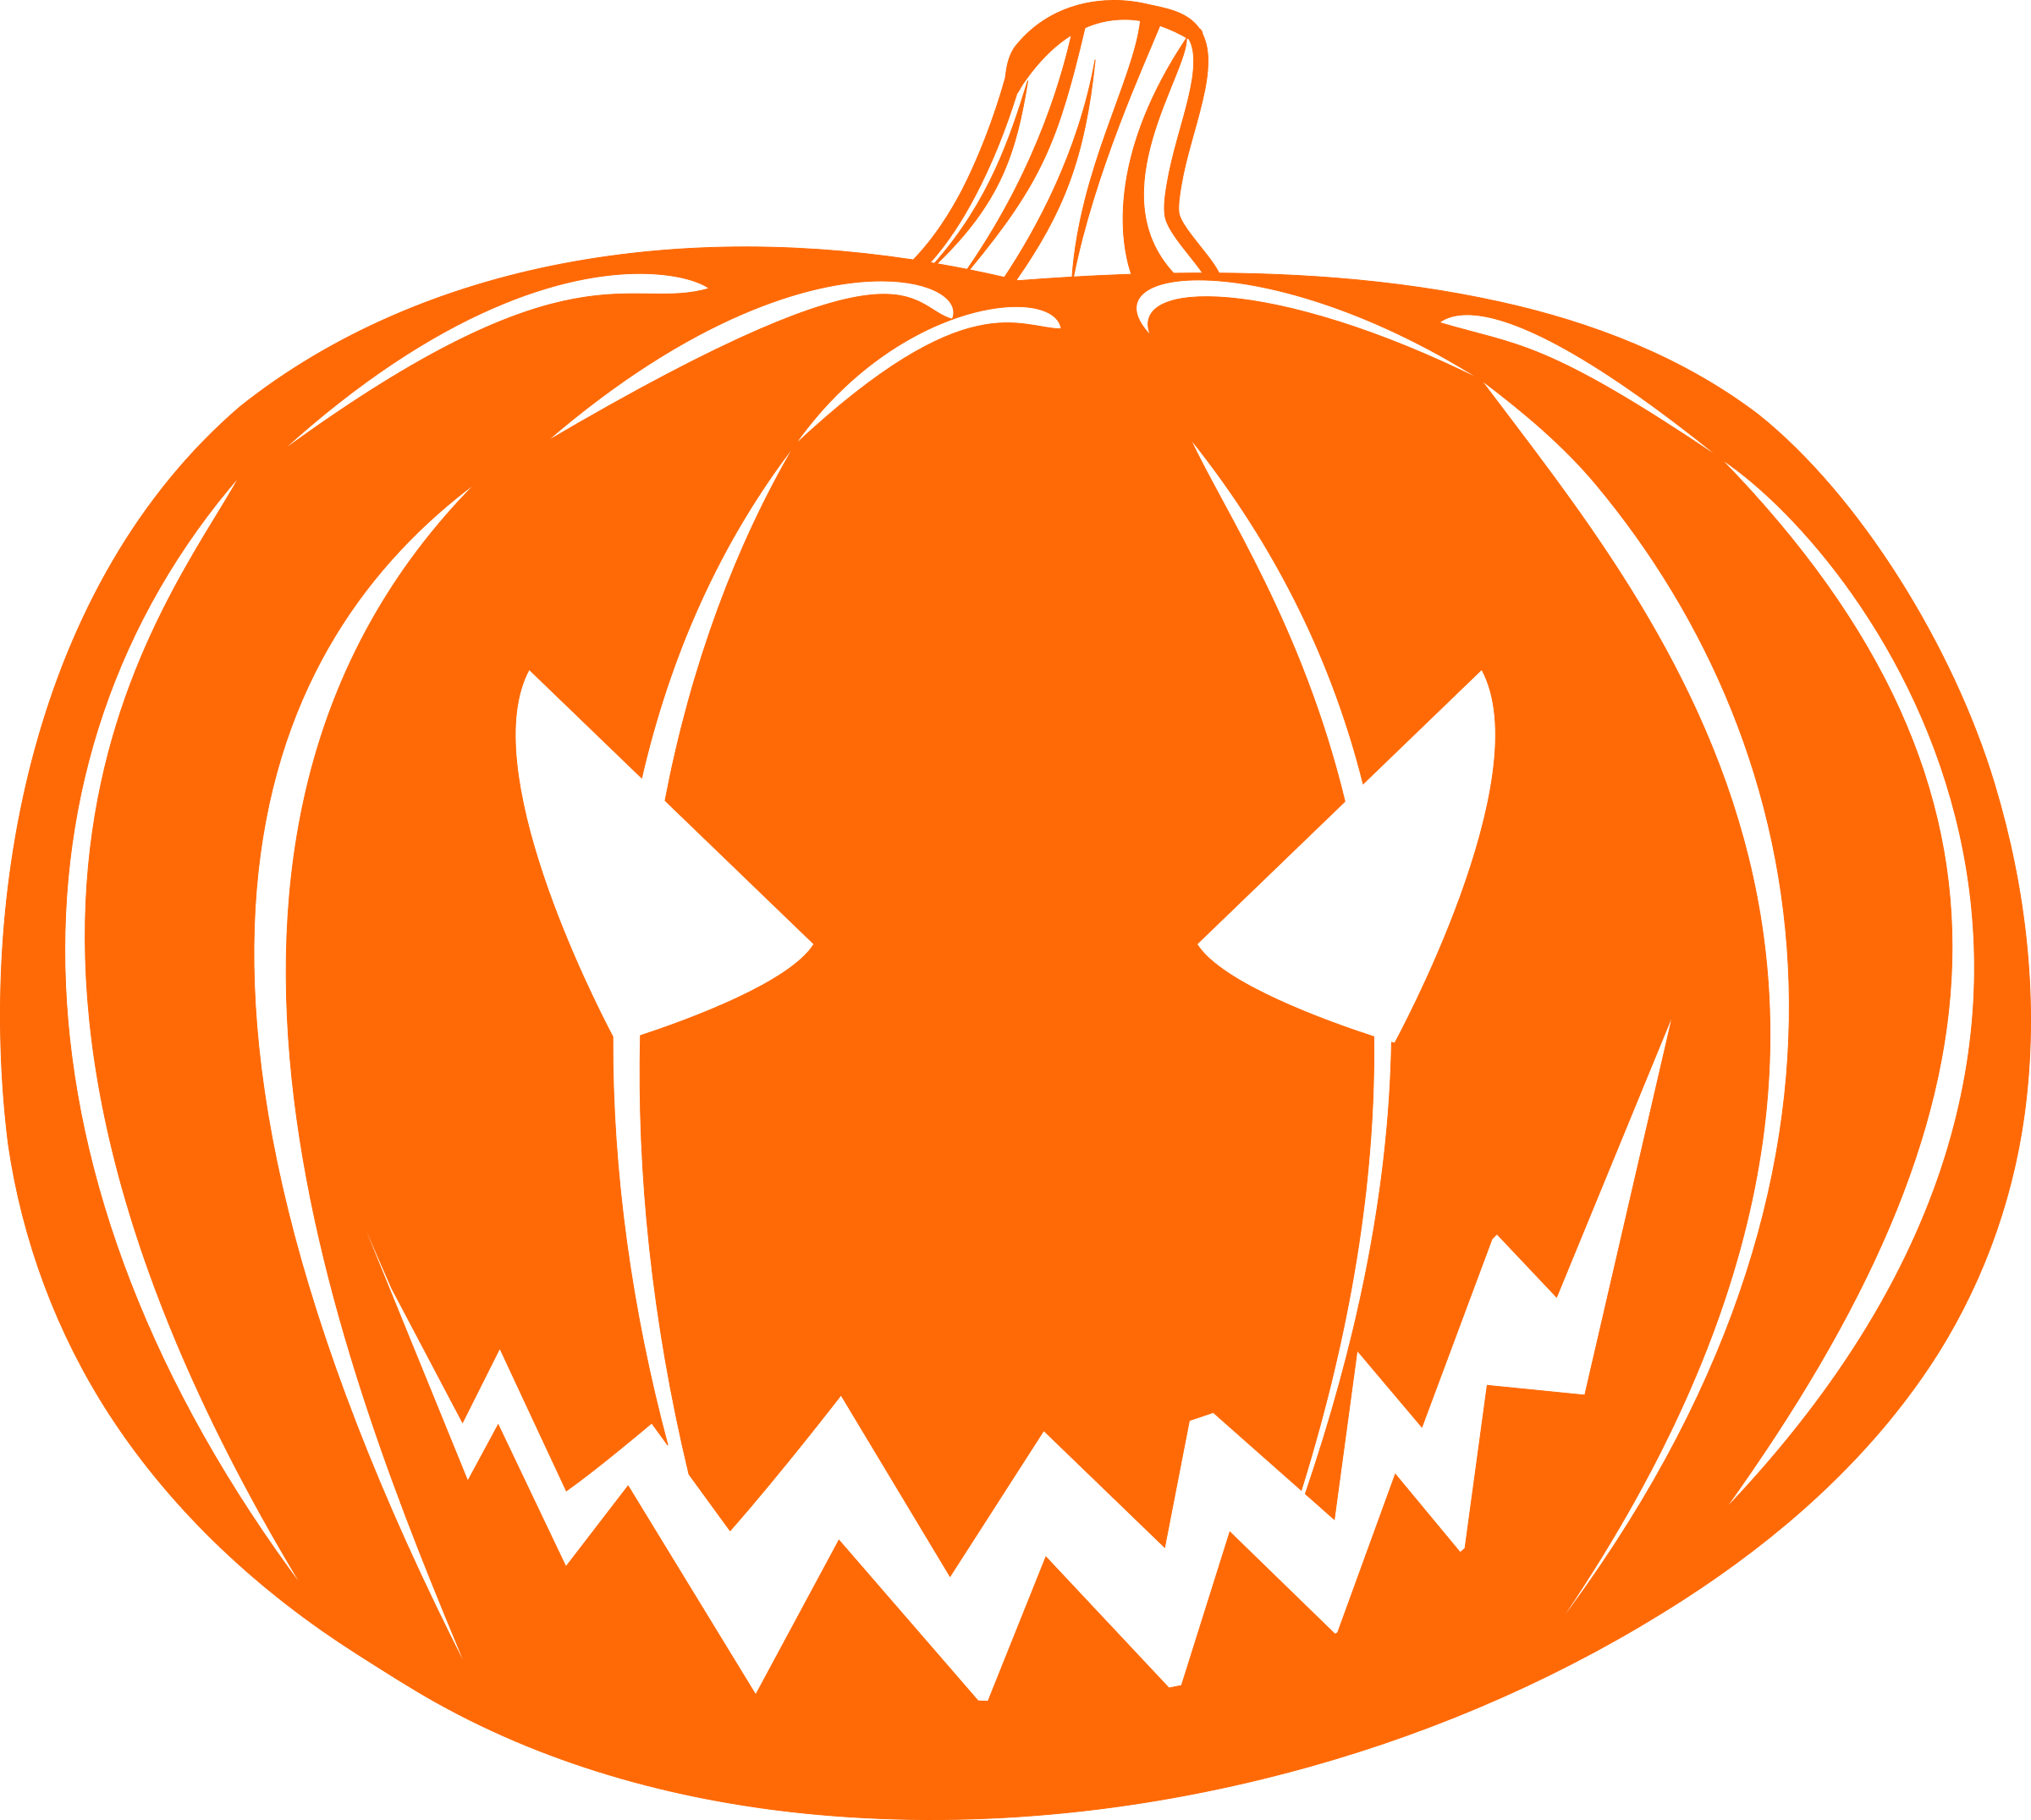 clipart scary jack o lantern rh openclipart org jack o lantern clipart black jack o lantern clipart black and white free